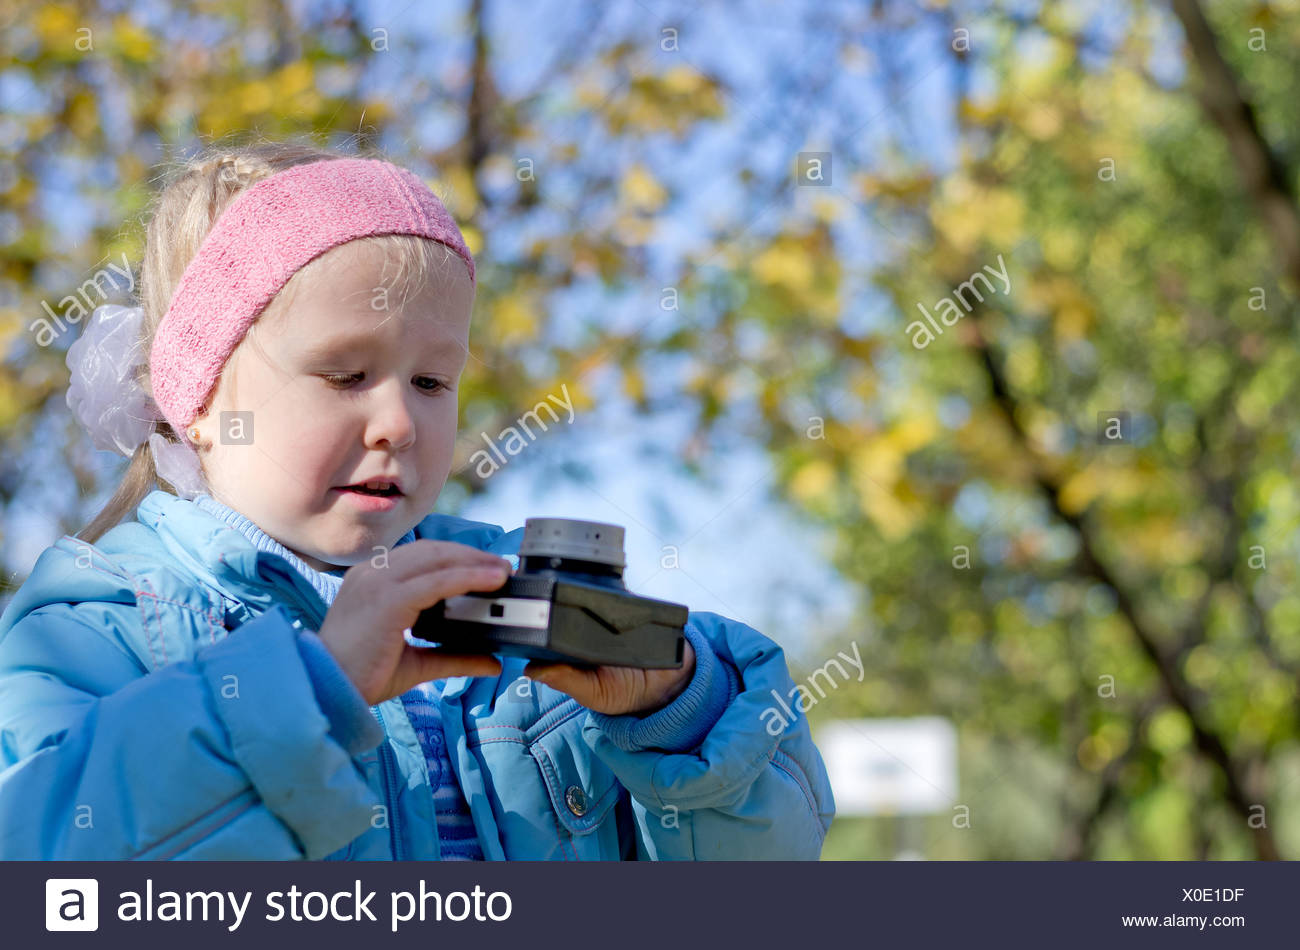 Small girl intrigued by an old camera - Stock Image